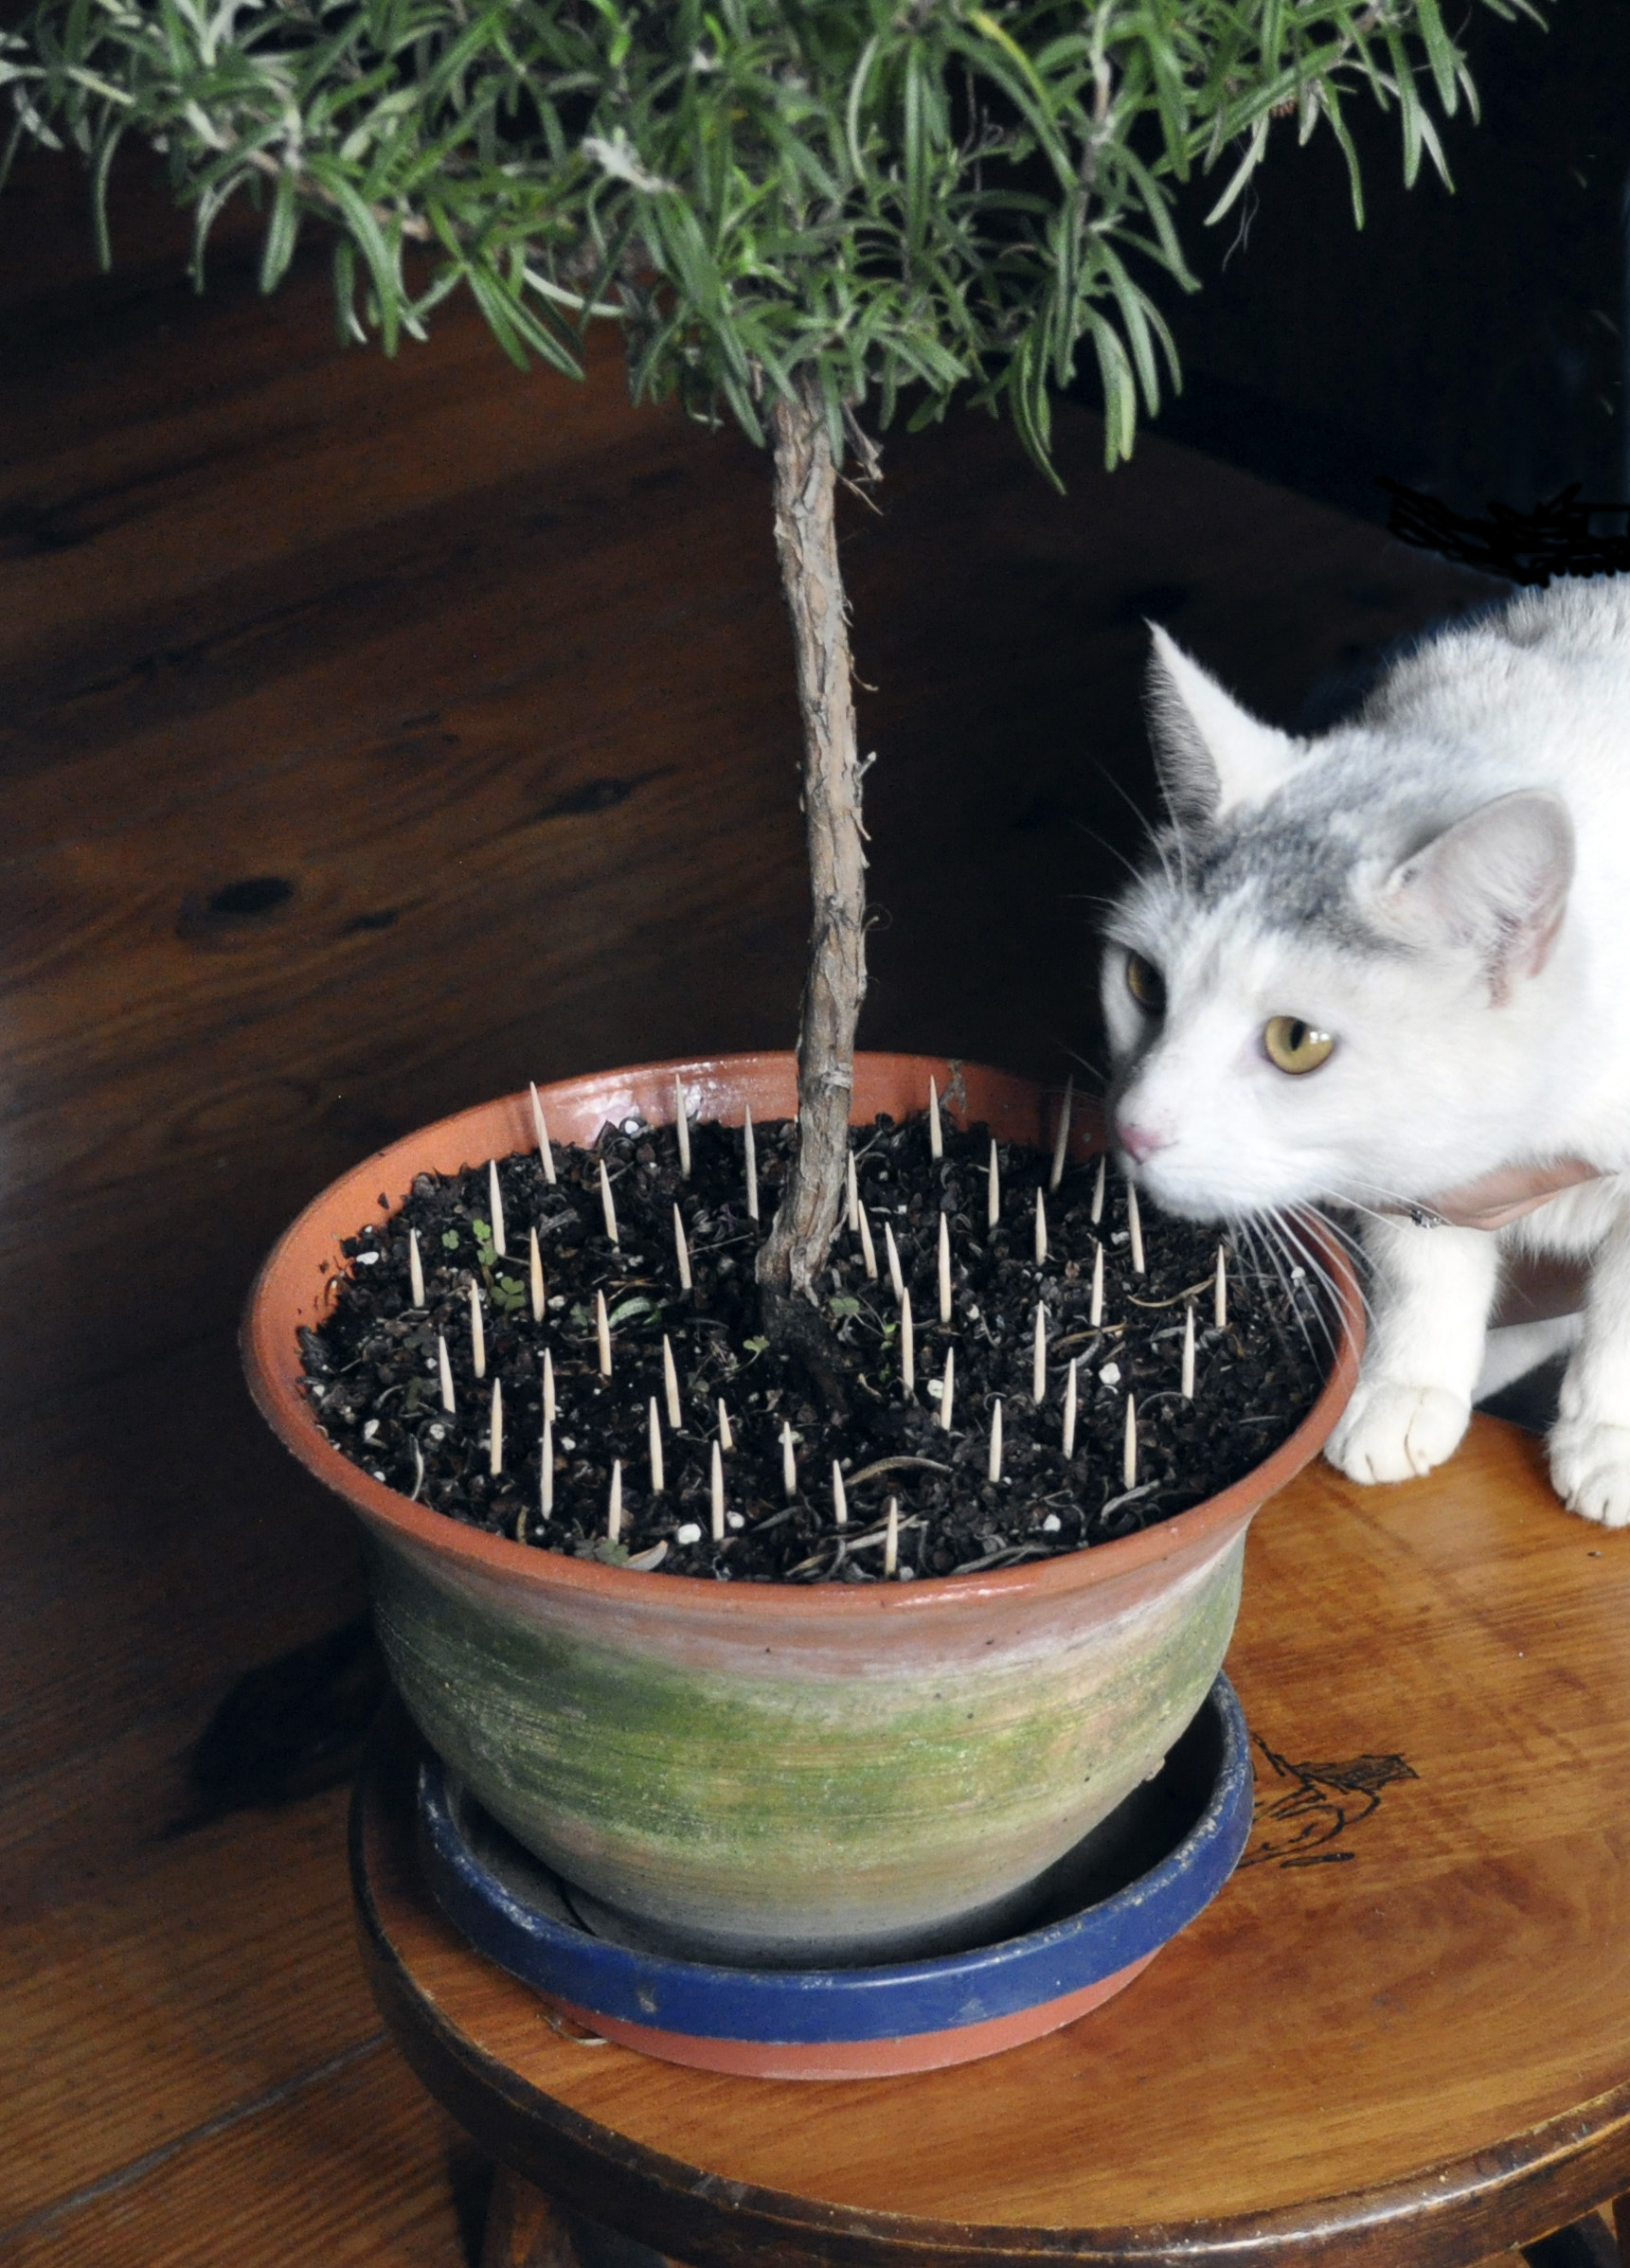 Take care mixing cats, houseplants | The Spokesman-Review